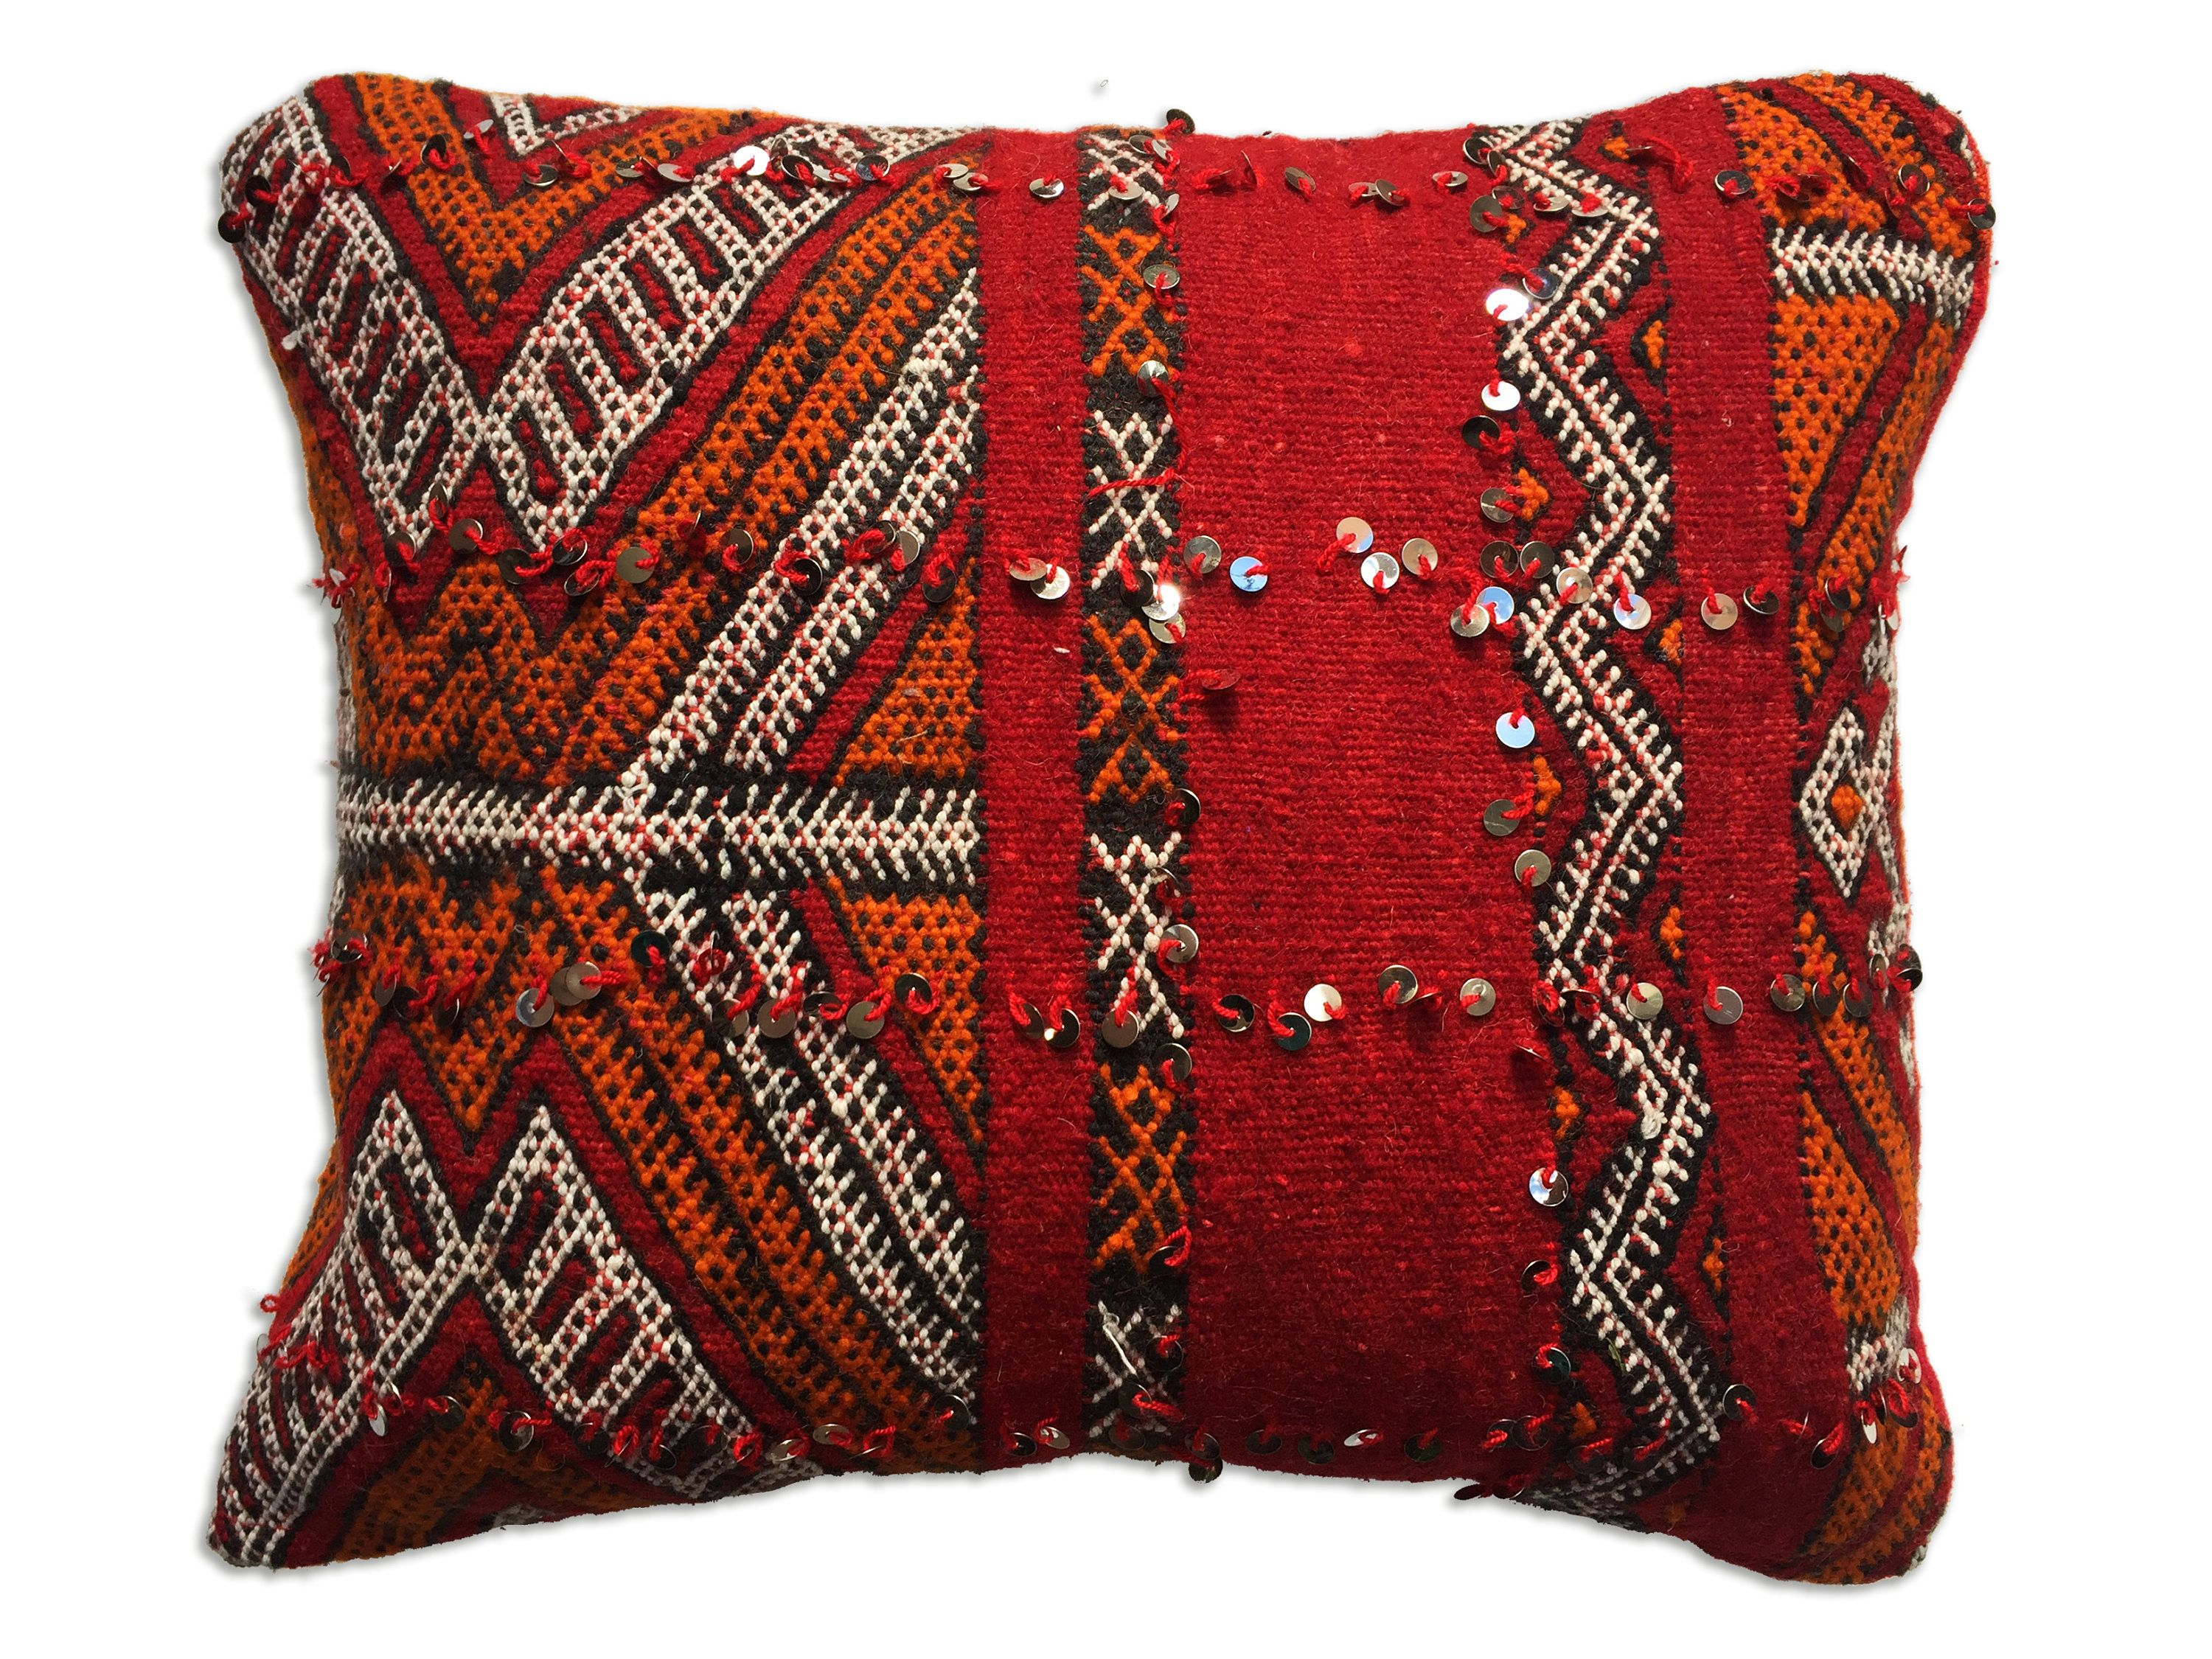 pillow floor beautify rugs your sweet throw pillows etsy kilim wonderful decorating delightful for patchwork covers antique turkish kilm bedroom